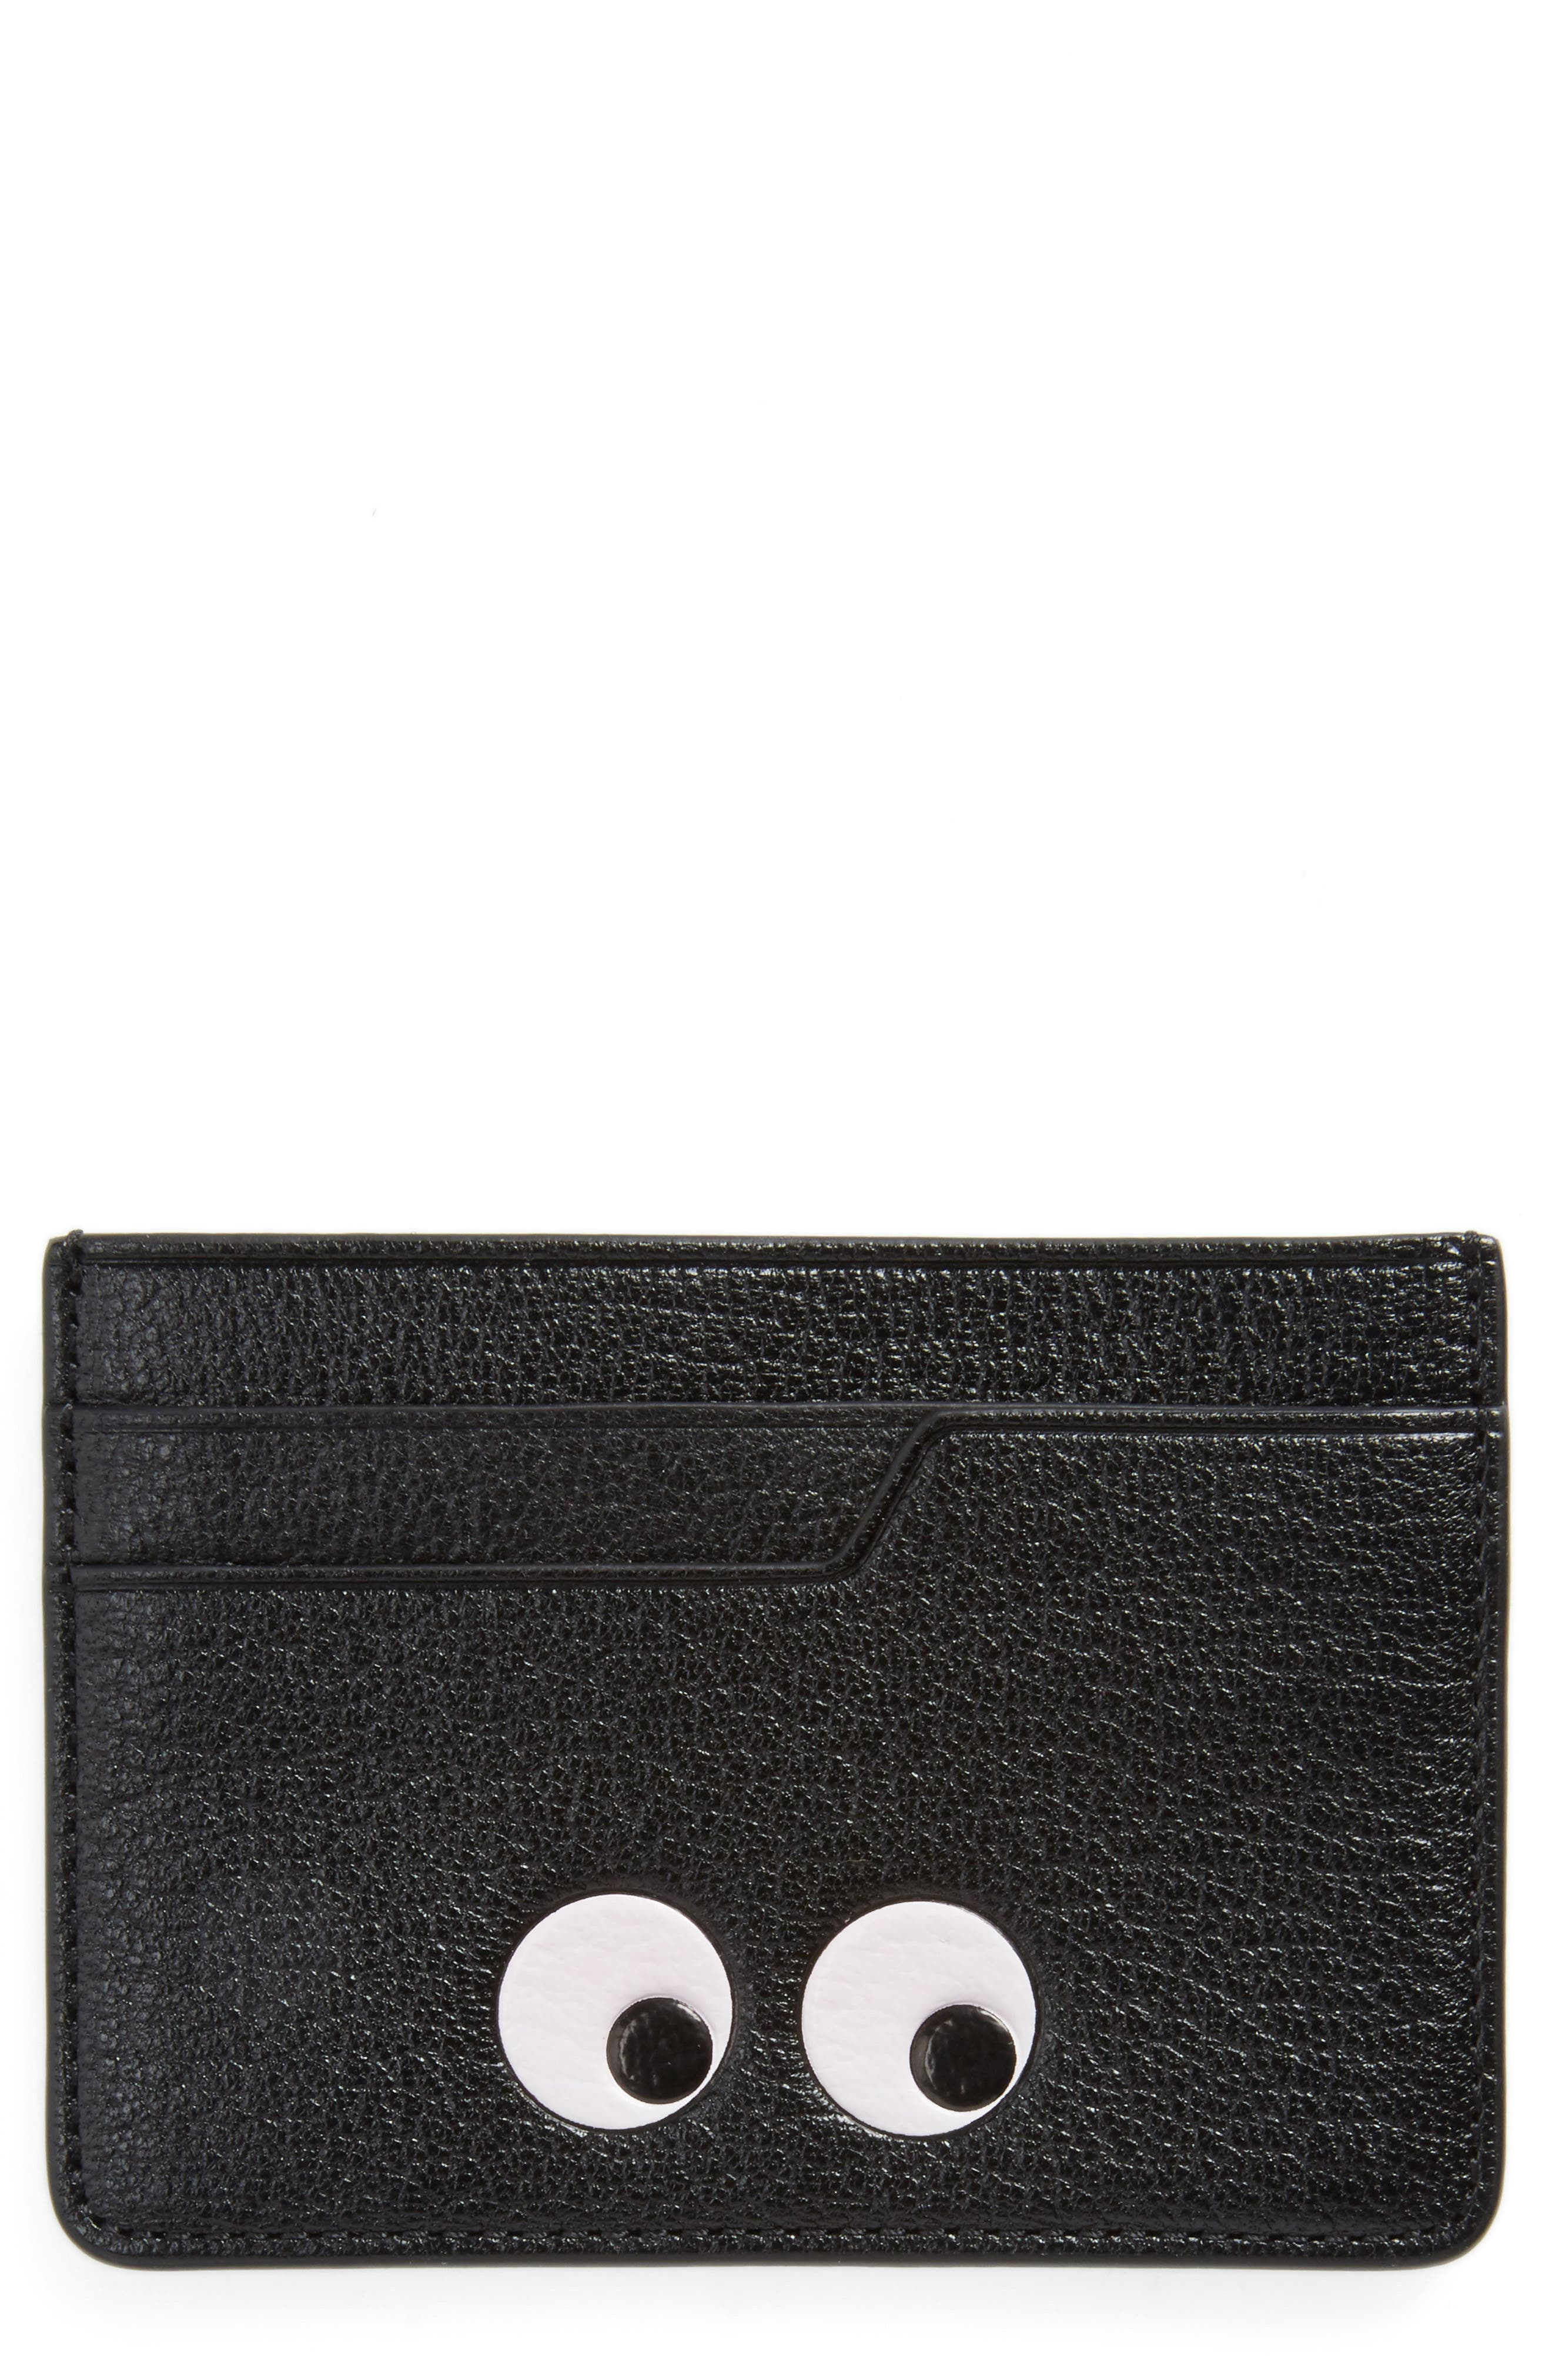 Eyes Leather Card Case,                         Main,                         color, 001